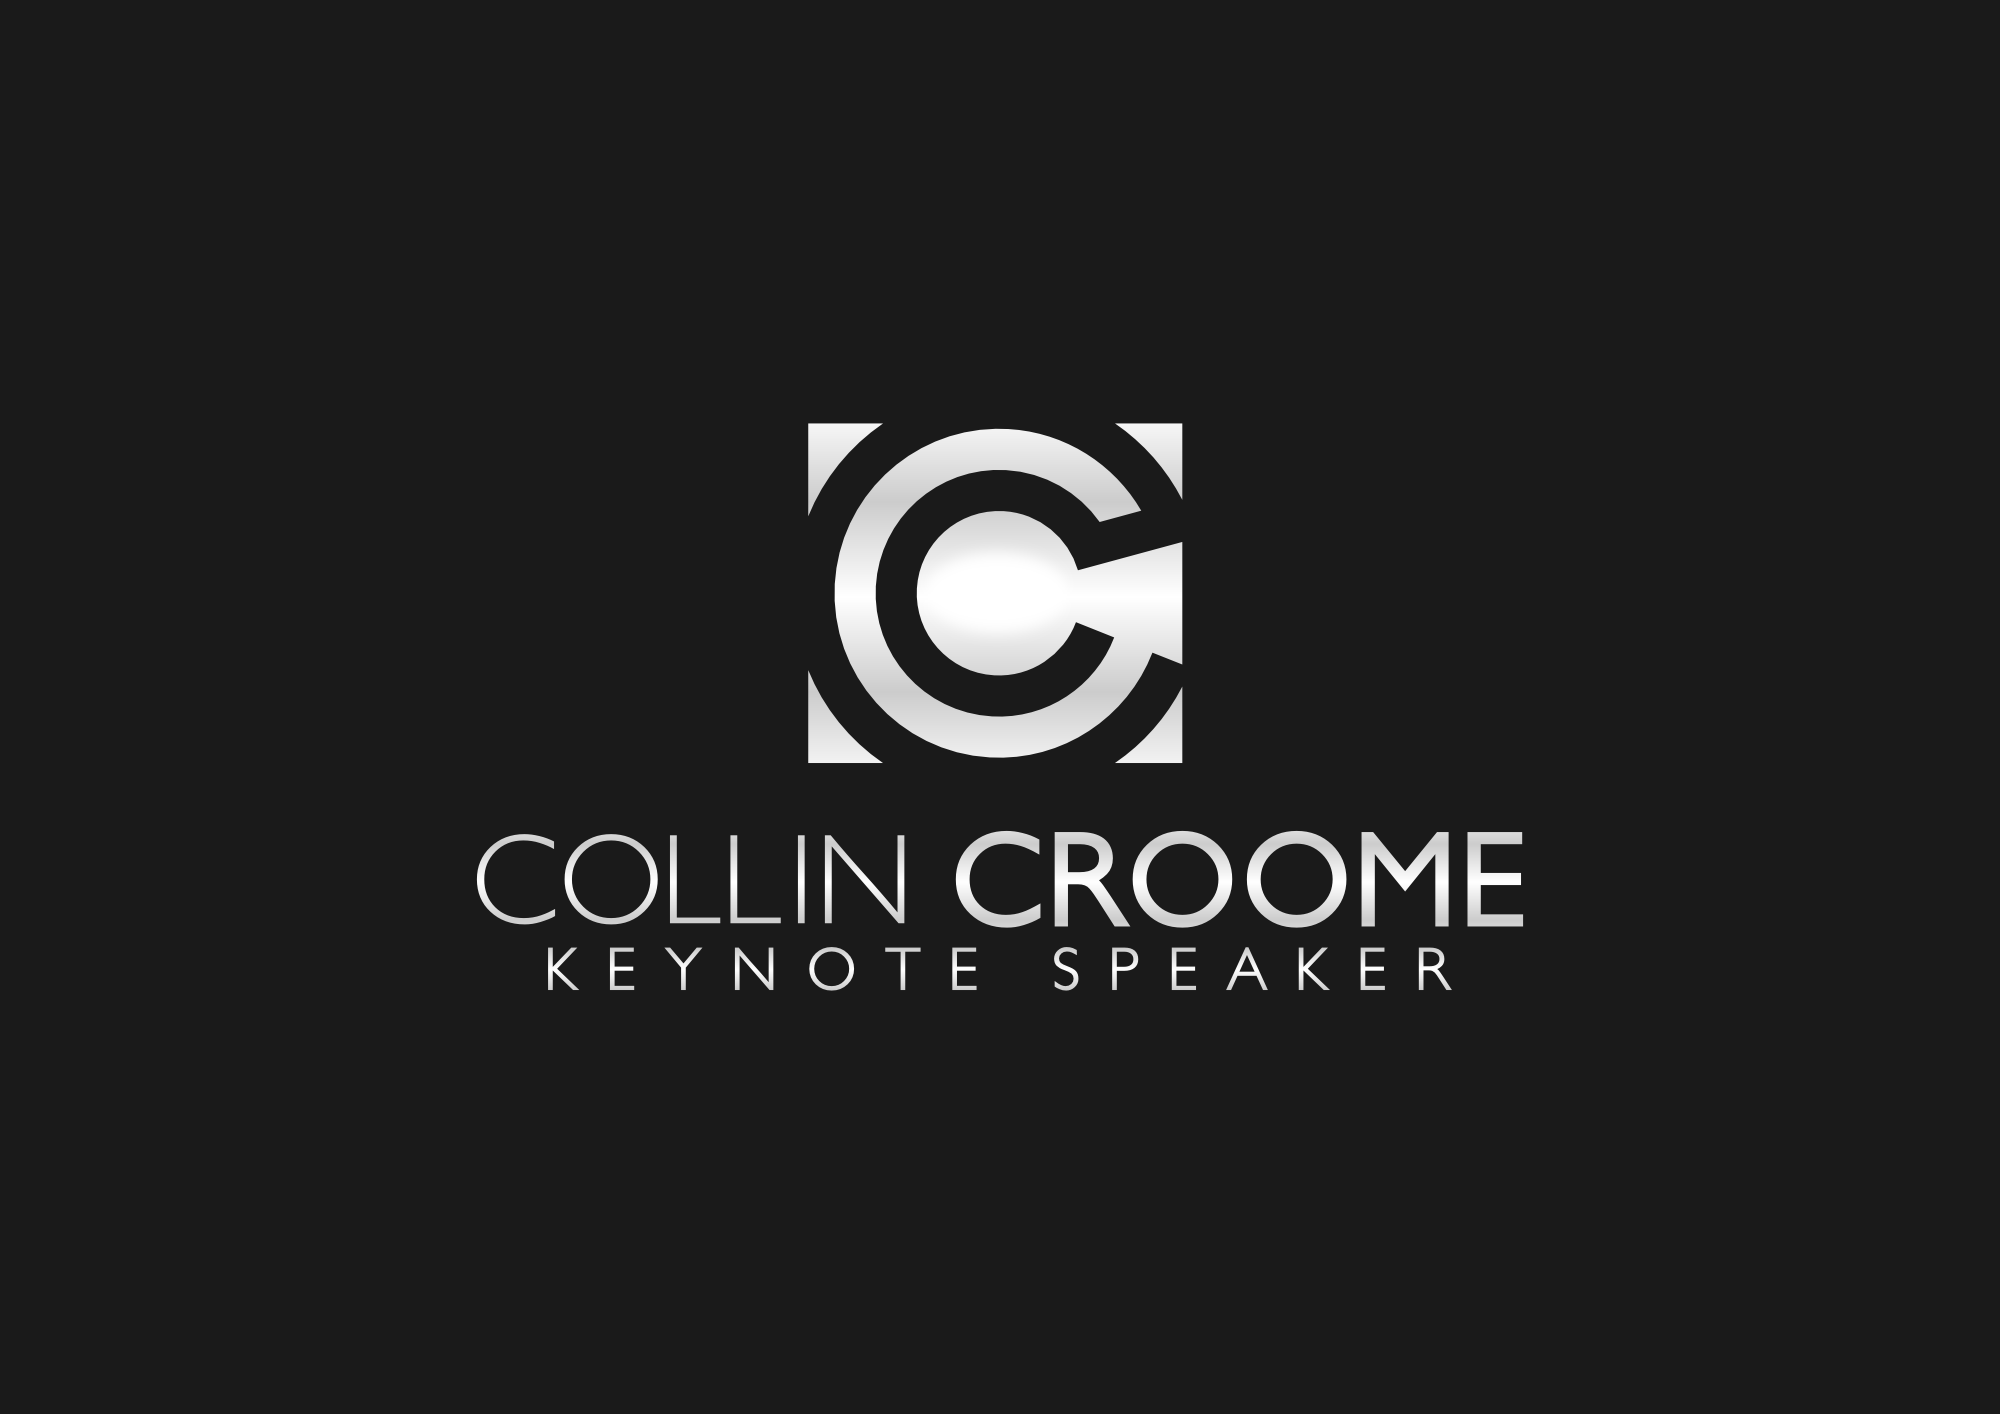 Logo Design by explogos - Entry No. 105 in the Logo Design Contest Modern Logo Design for Collin Croome.